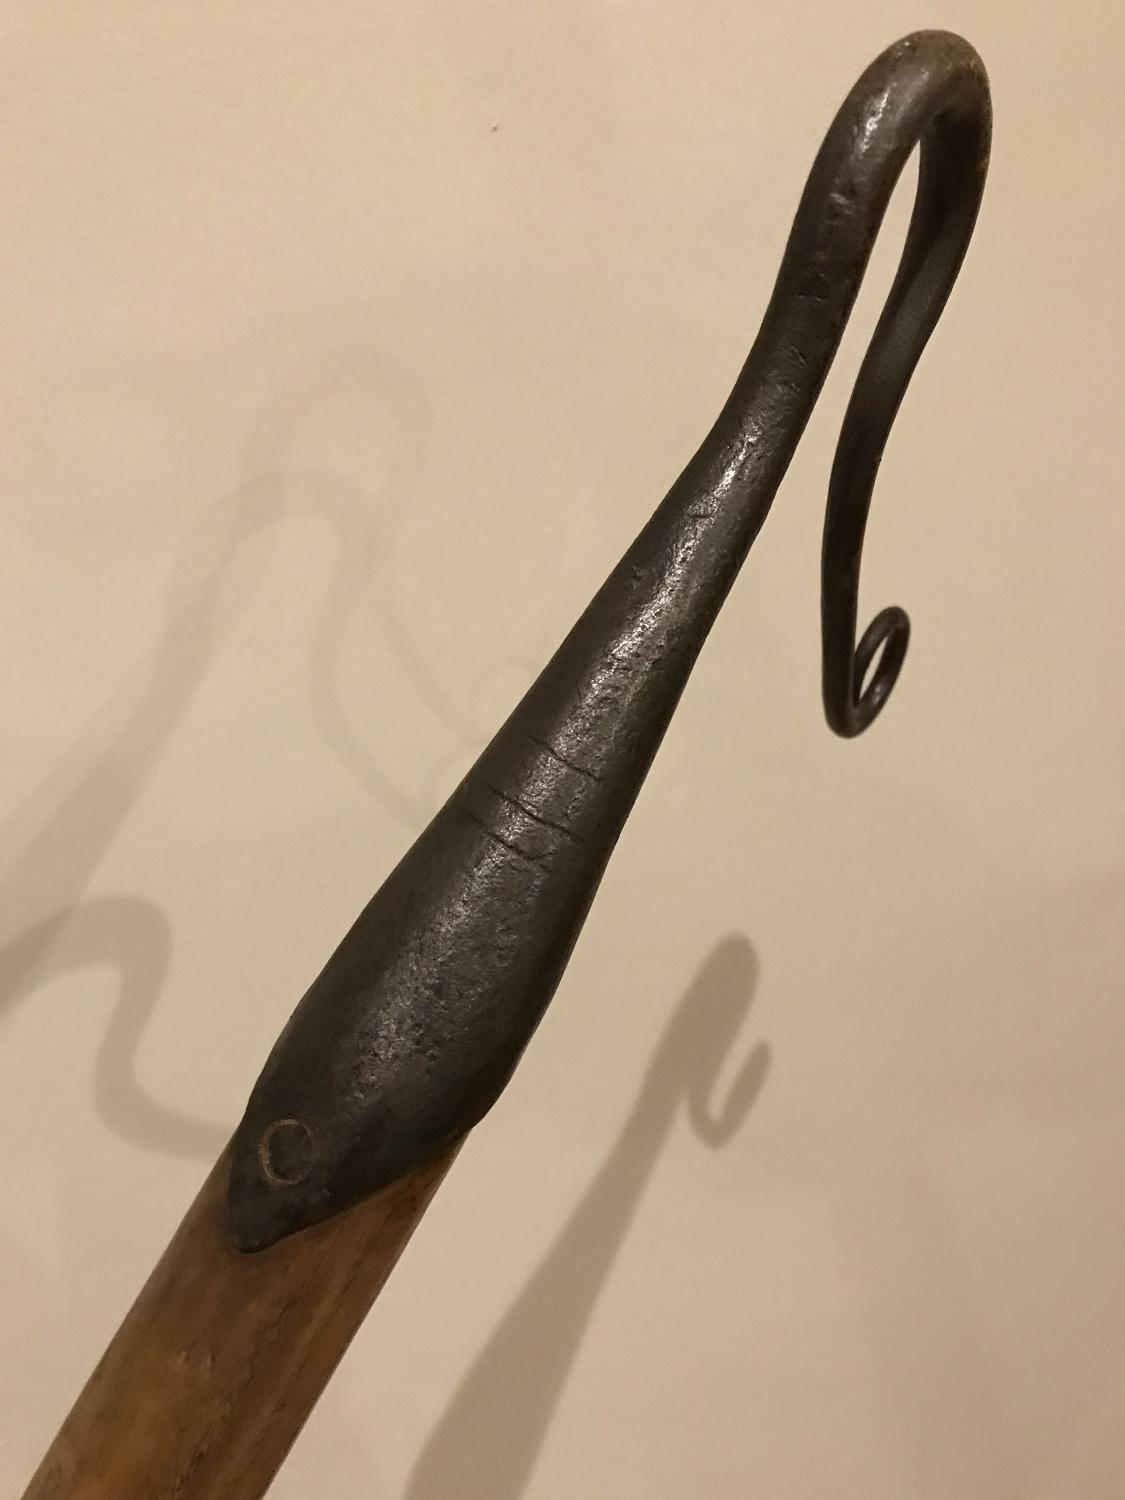 Antique Sussex Shepherd's Crook